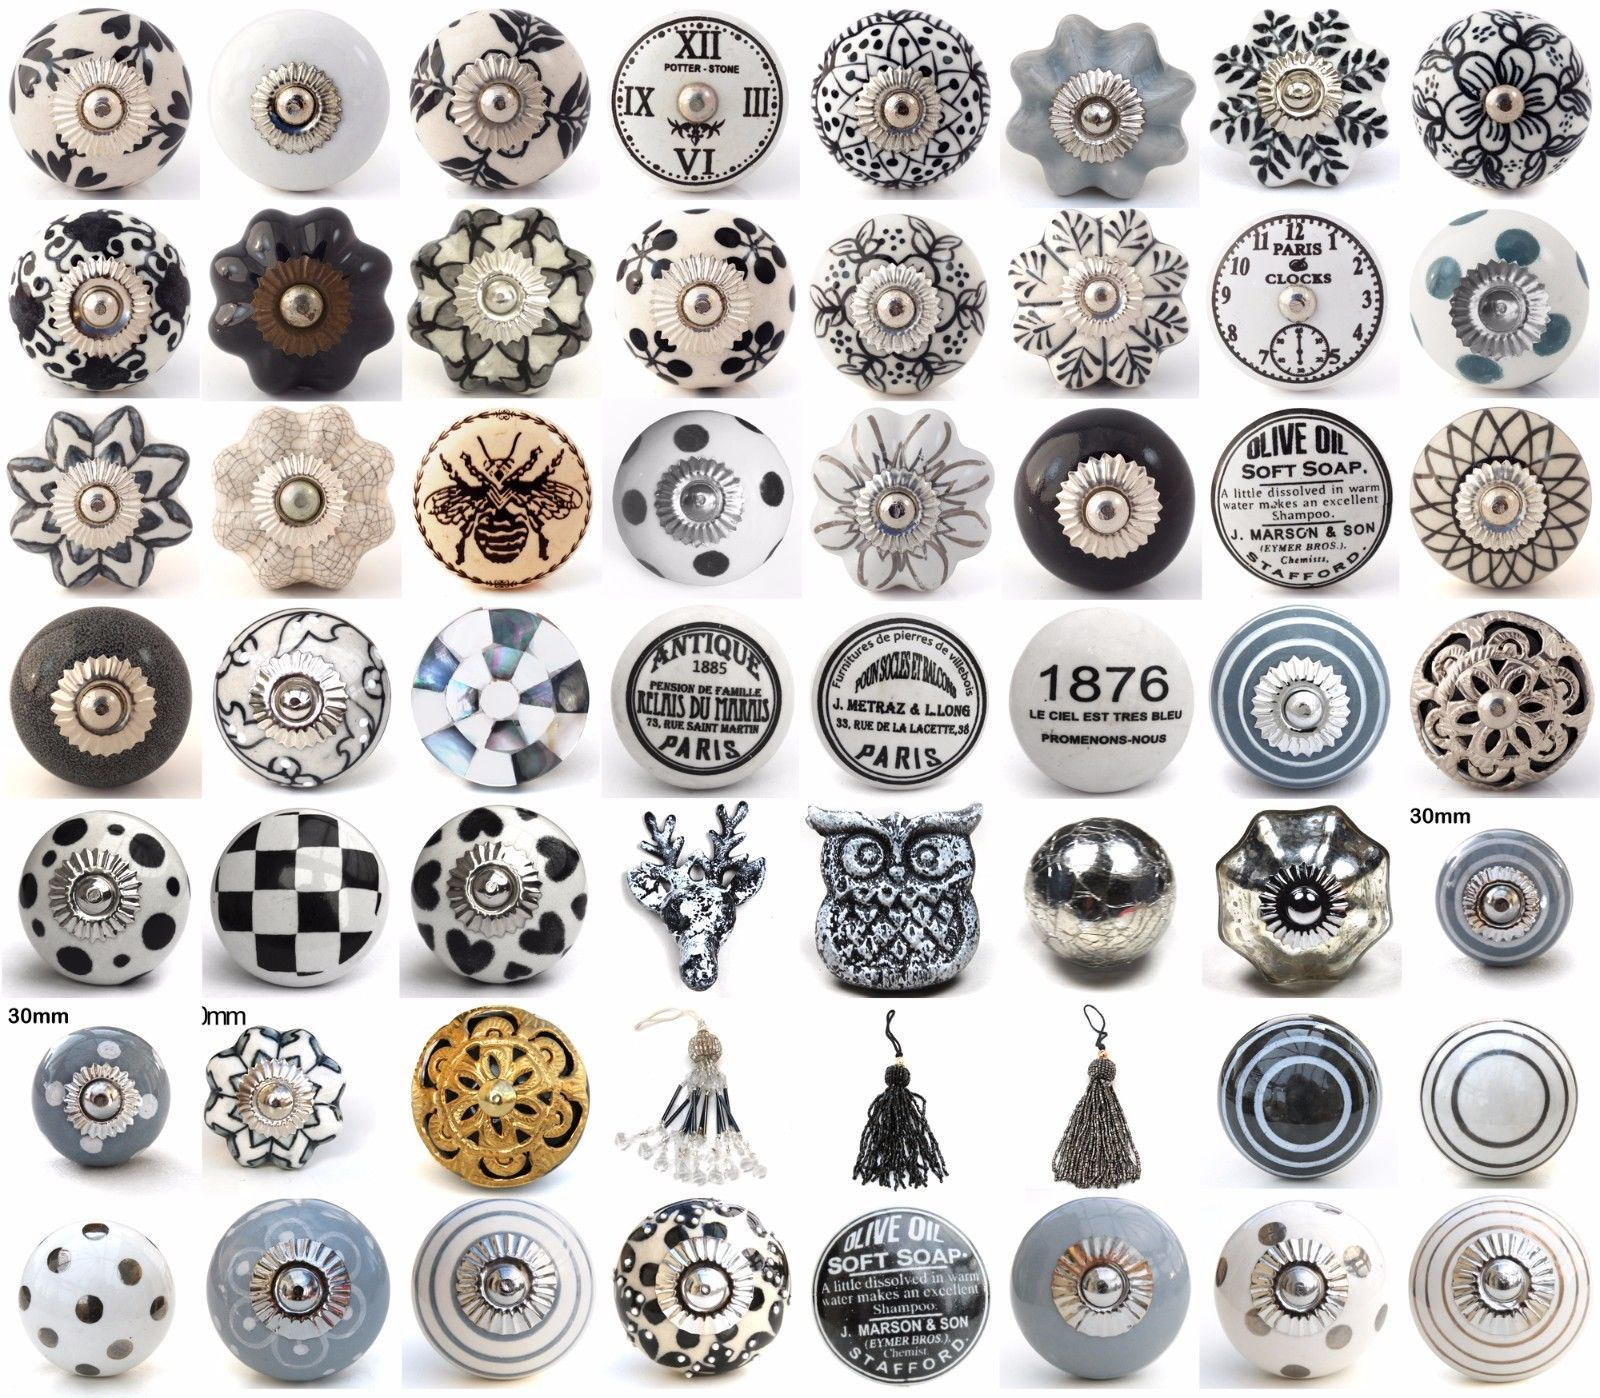 Wrong Size But Pattern Inspiration Black White Grey Ceramic Knobs Drawer  Pull Cupboard Door Knobs Porcelain China In Home, Furniture U0026 DIY, Home  Decor, ...